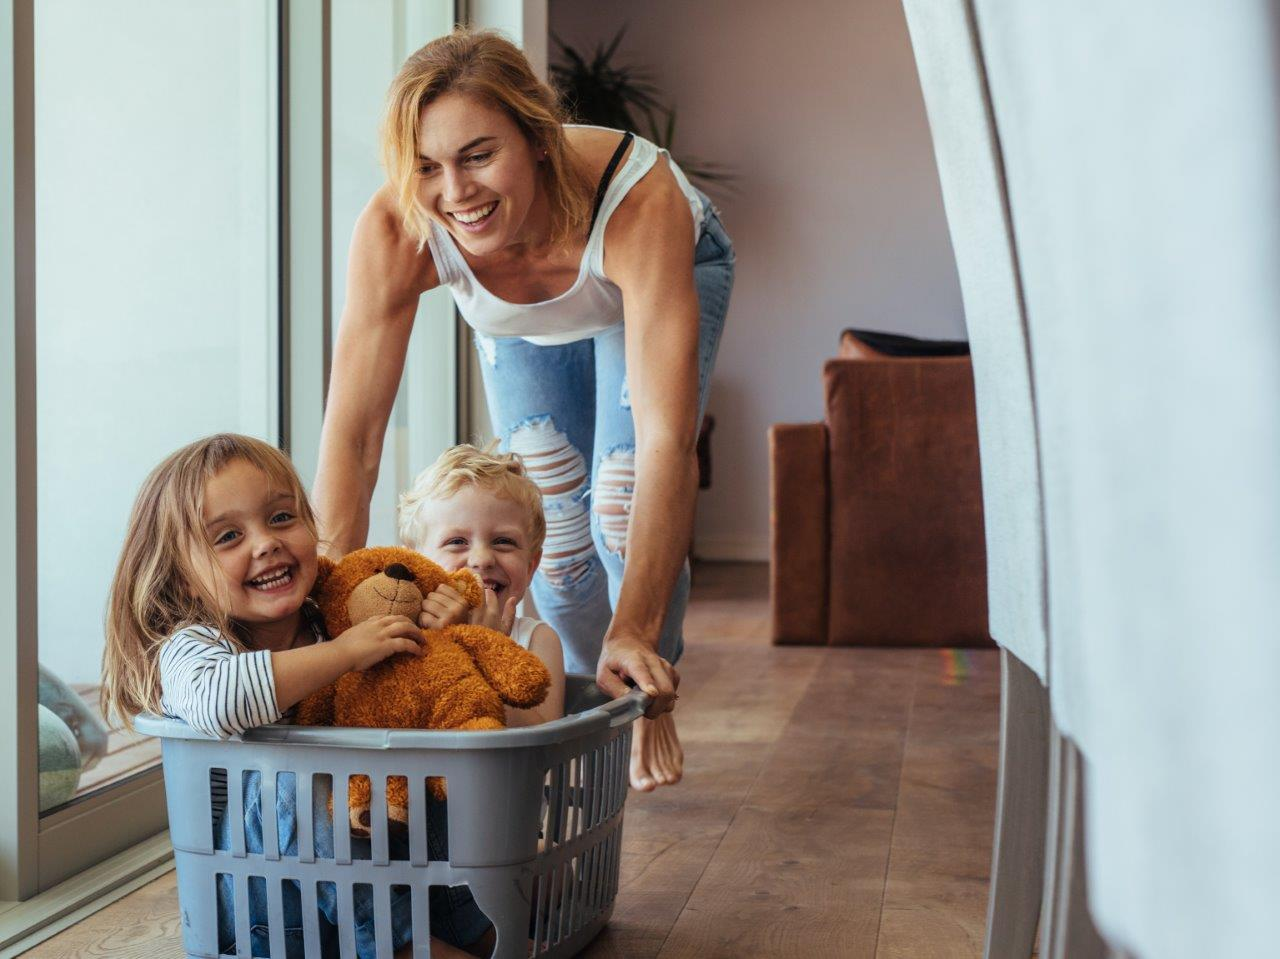 Interior lifestyle stock image of family